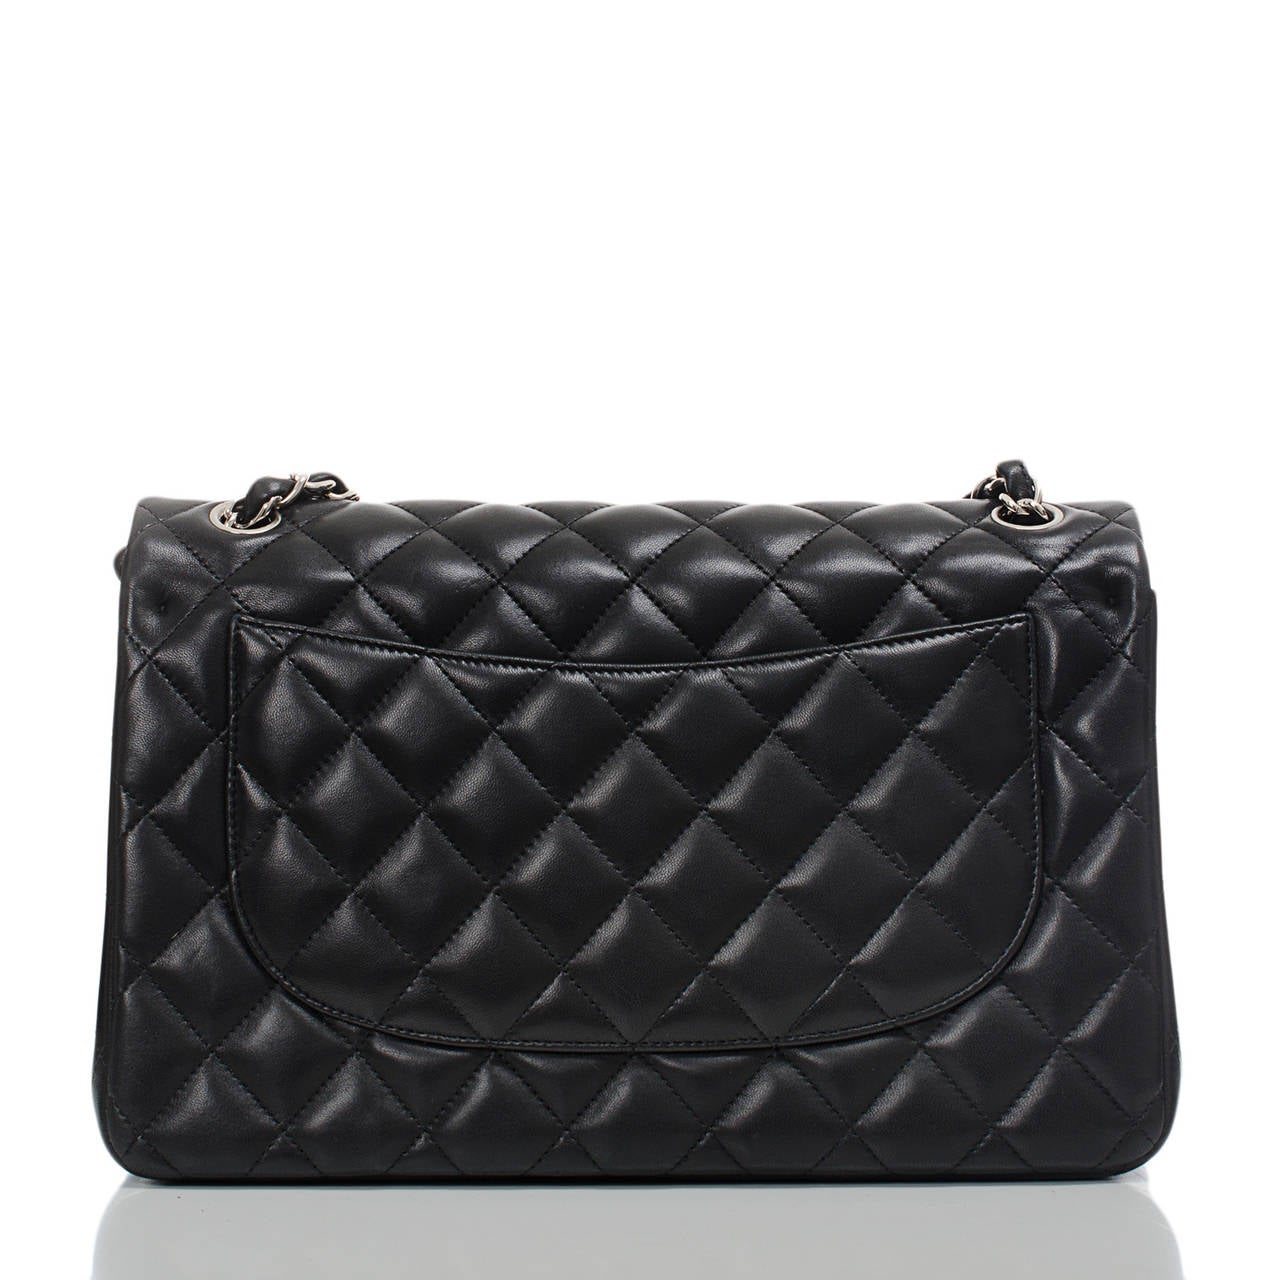 Chanel Black Quilted Lambskin Jumbo Classic Double Flap Bag In New never worn Condition For Sale In New York, NY